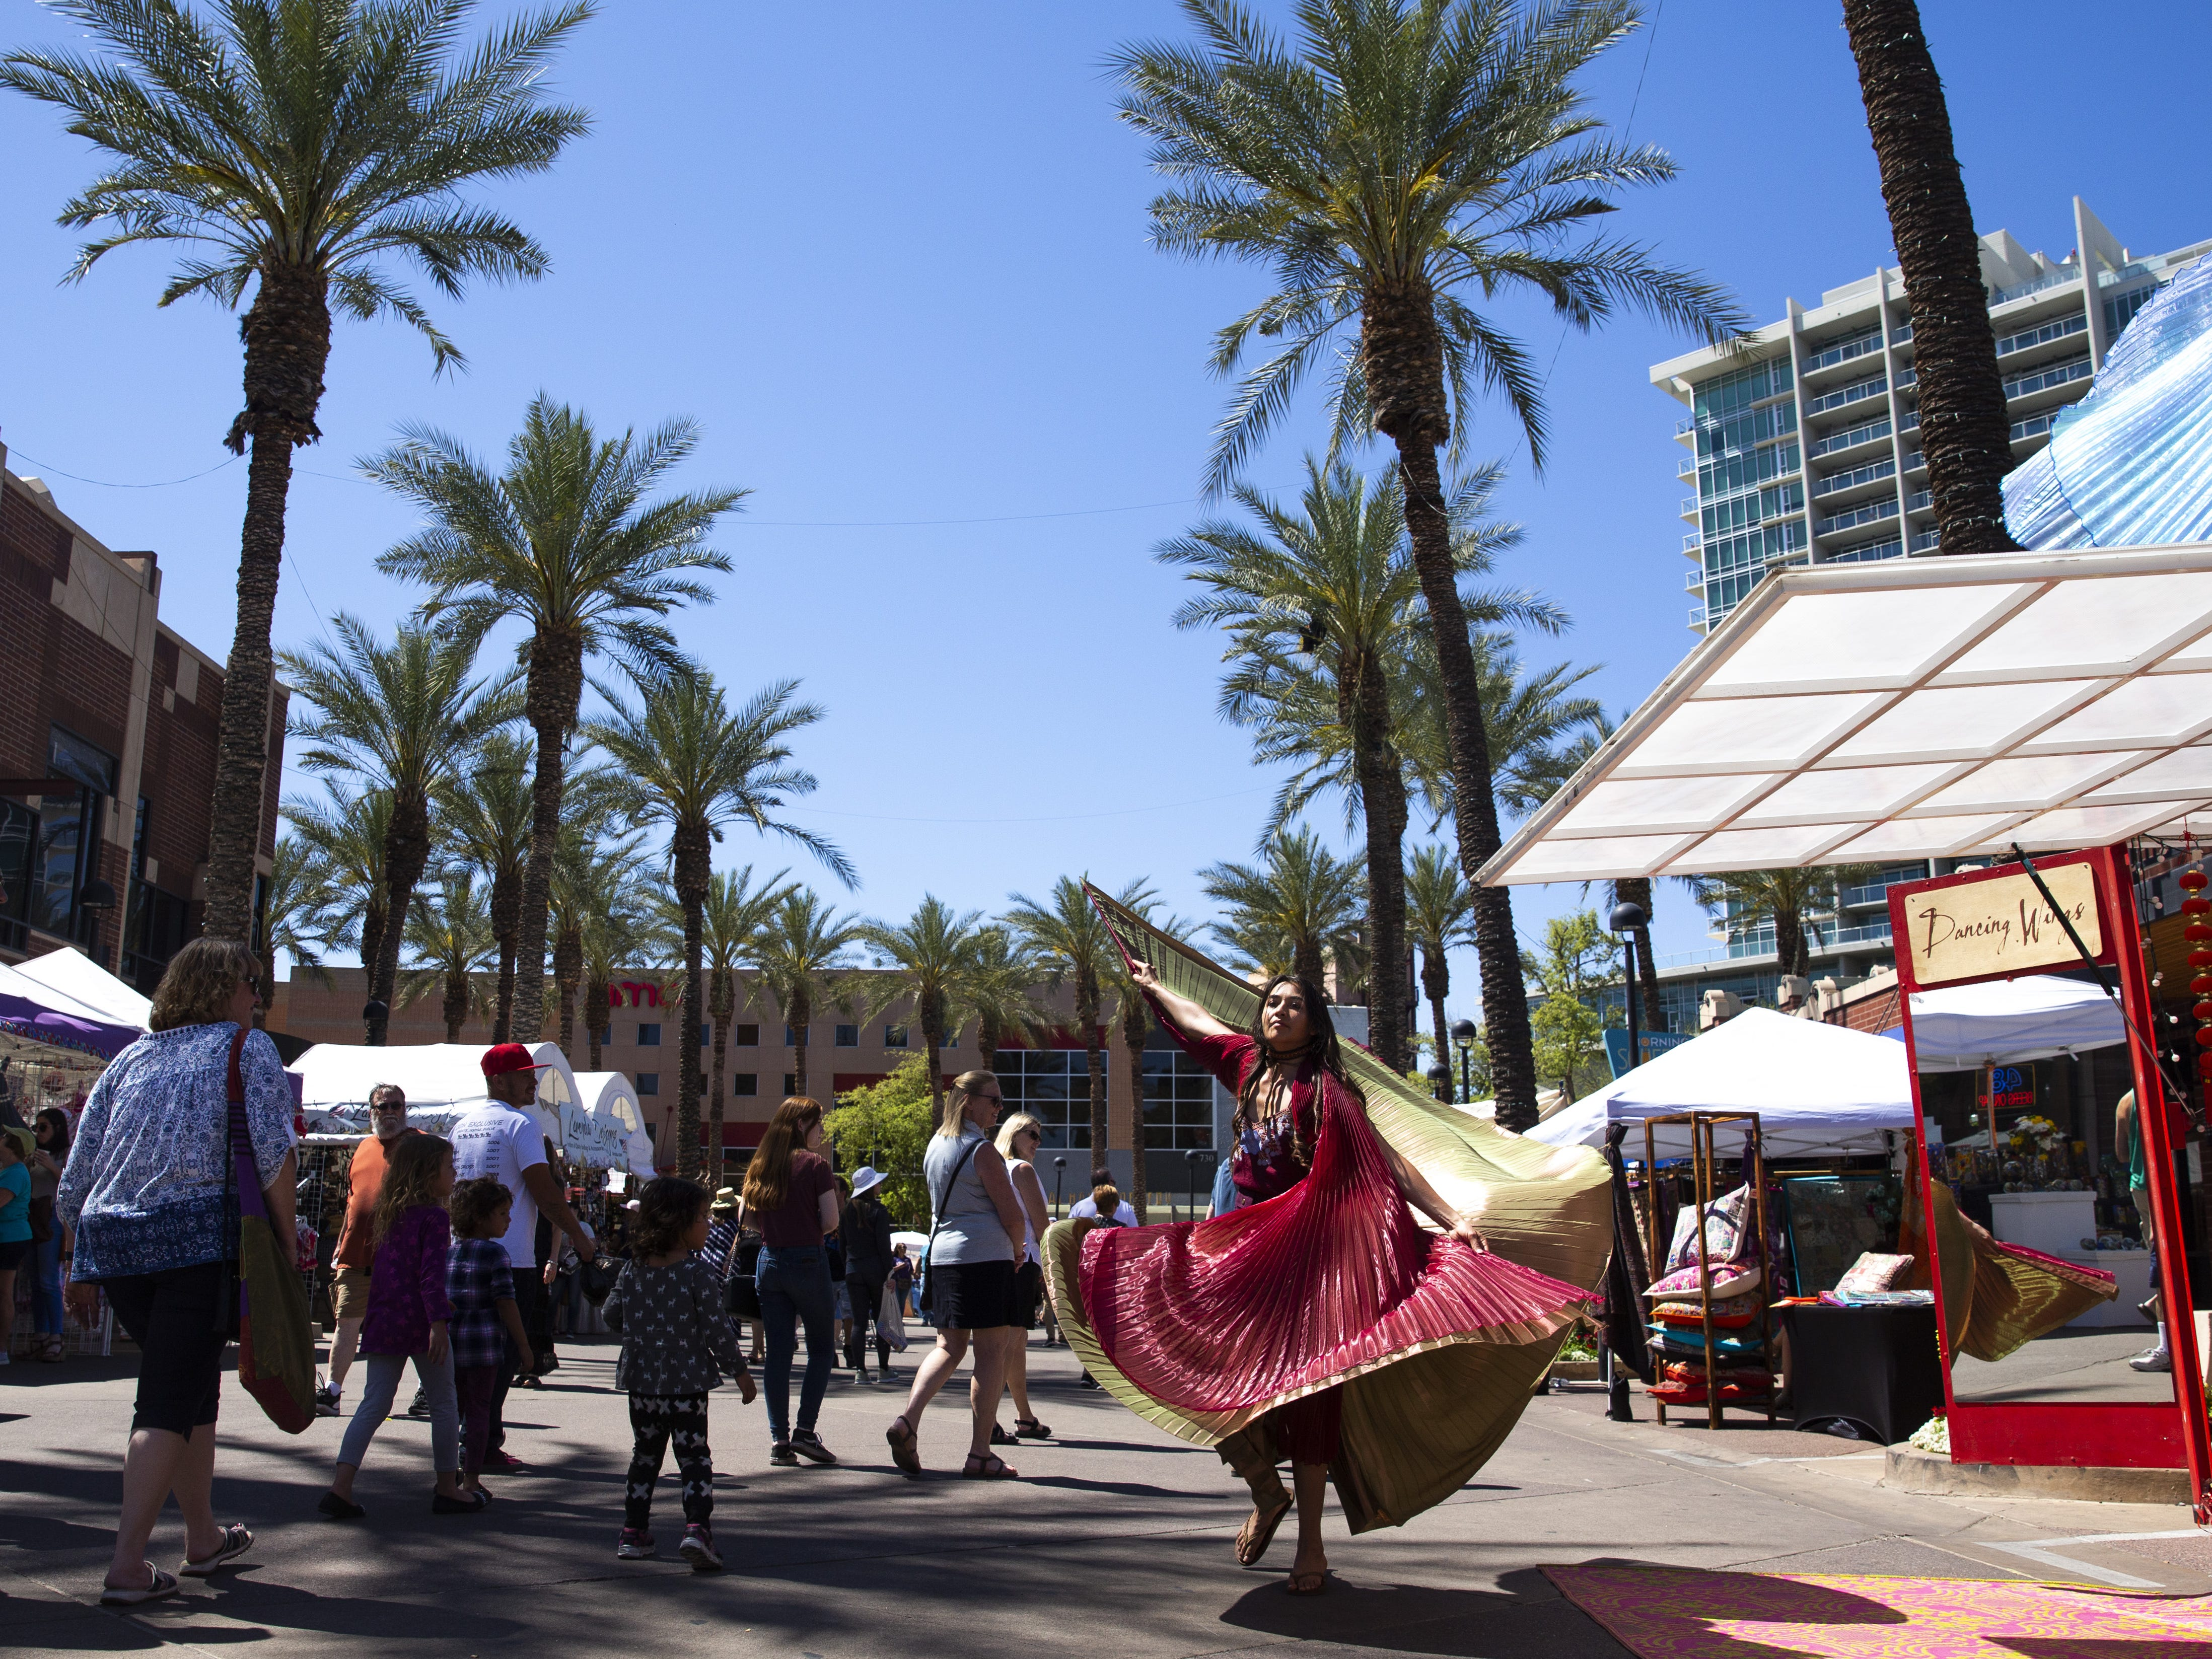 Brii Faye models Dancing Wings at the Spring Tempe Festival of the Arts in downtown Tempe on March 30, 2019. Dancing Wings sells wings for both children and adults.